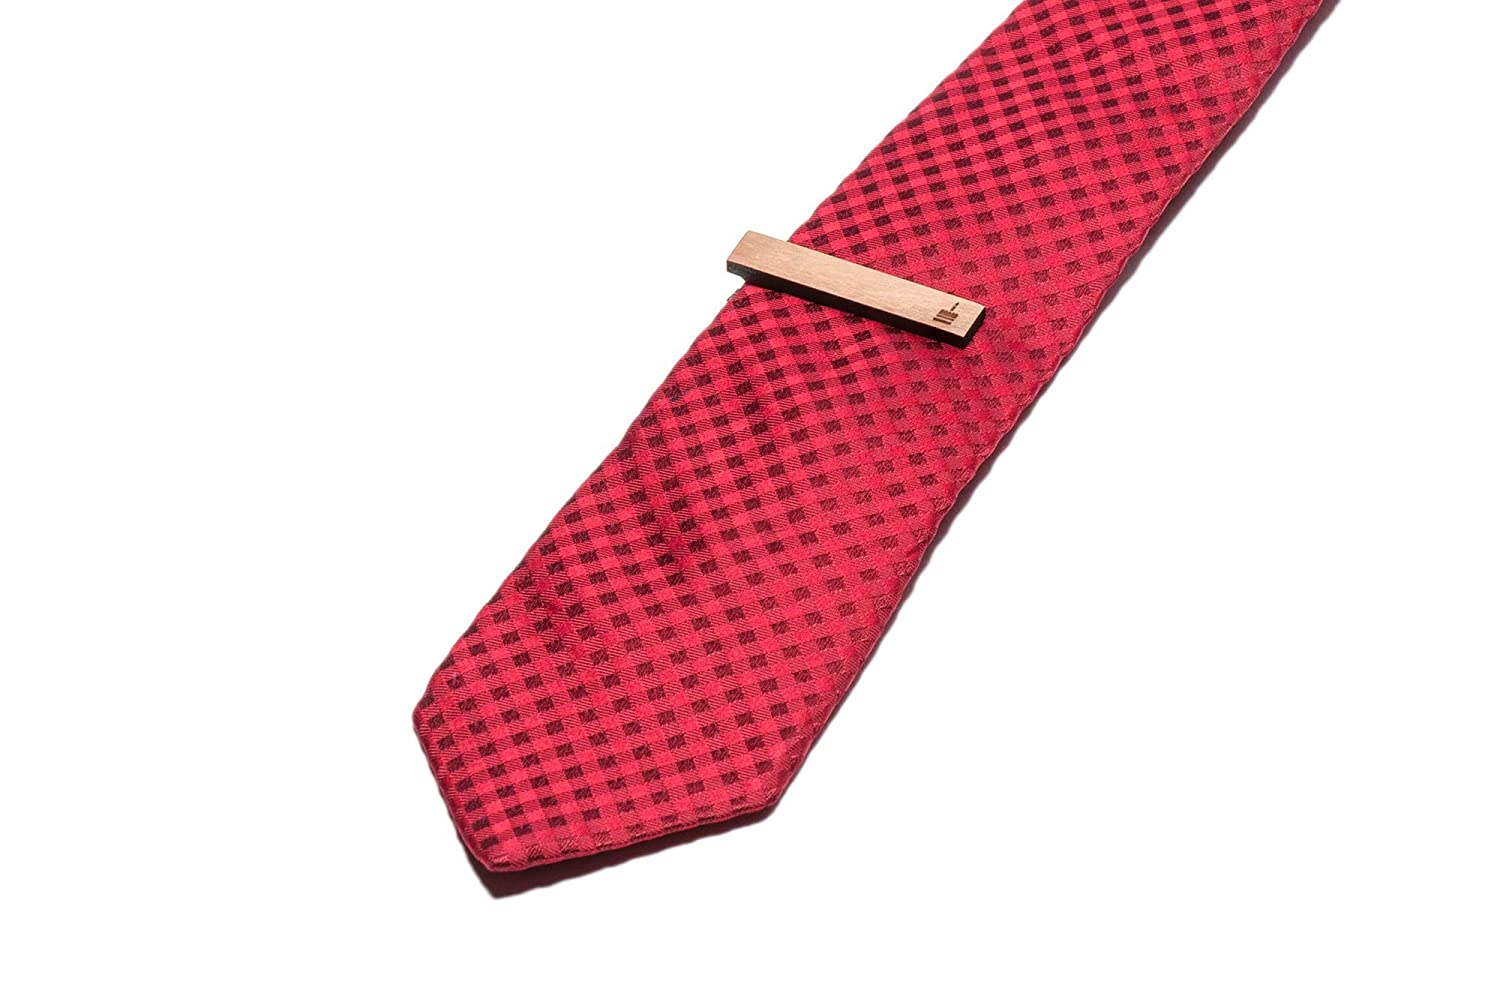 Cherry Wood Tie Bar Engraved in The USA Wooden Accessories Company Wooden Tie Clips with Laser Engraved Torte Design